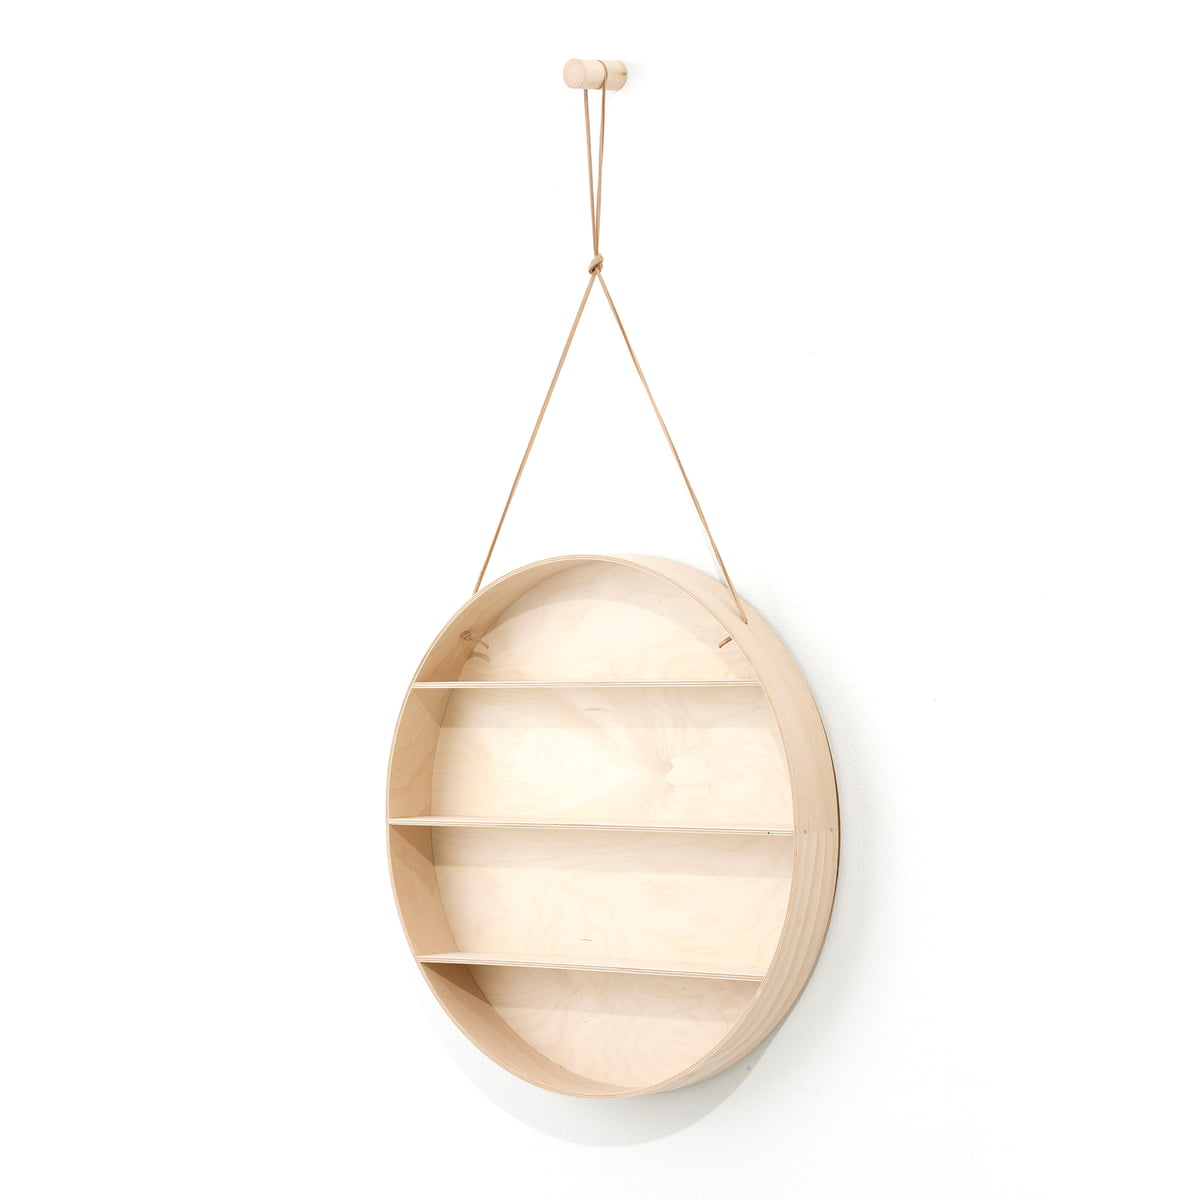 The Round Dorm Von Ferm Living Im Shop